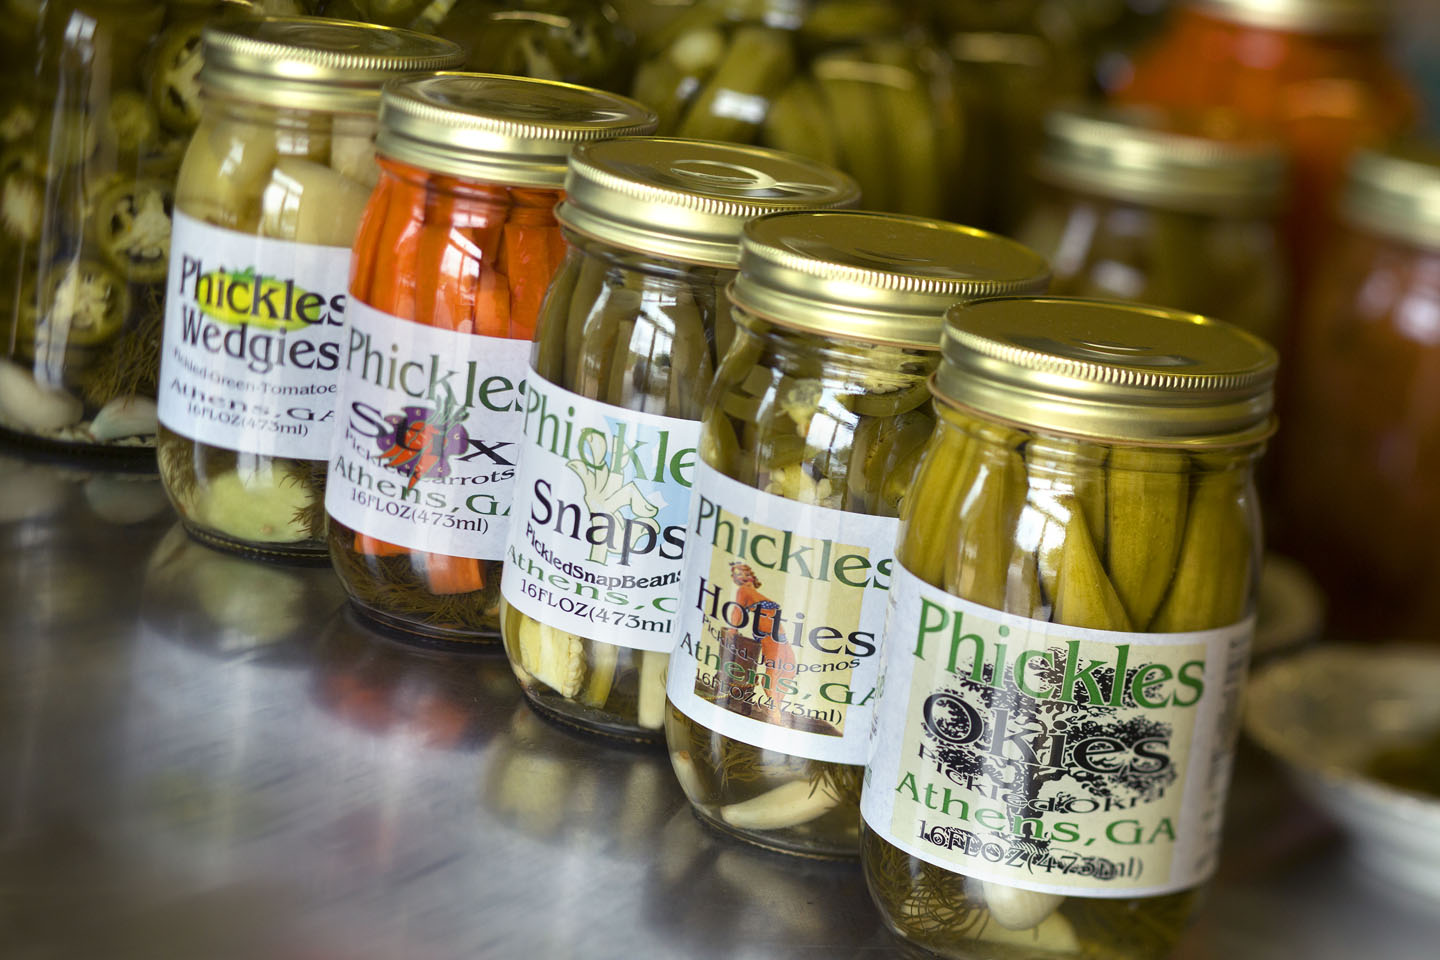 Phickles-Pickles-Pickled-Okra-Jalapenos-Beans-Carrots-Green-Tomatoes ...